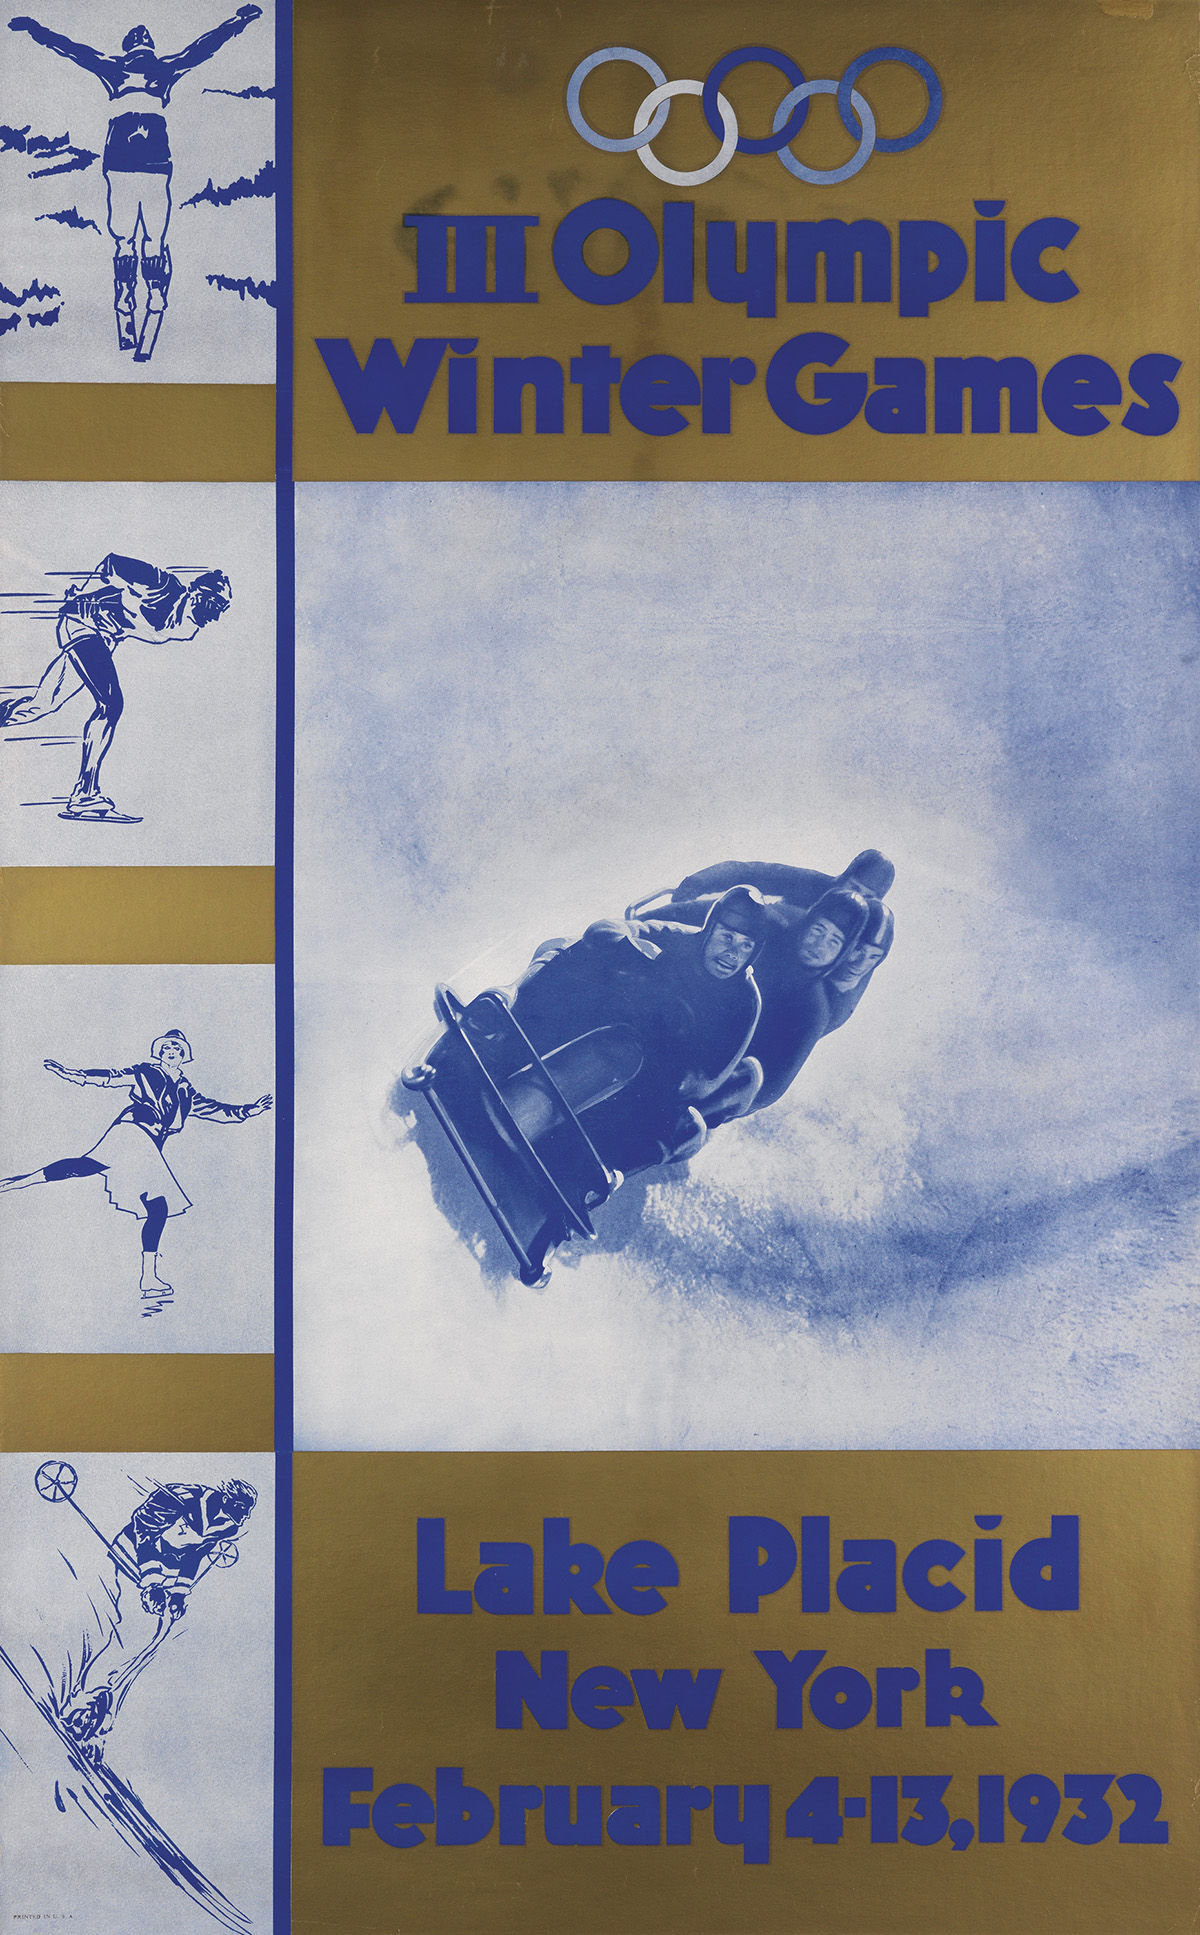 DESIGNER-UNKNOWN-III-OLYMPIC-WINTER-GAMES--LAKE-PLACID-1932-